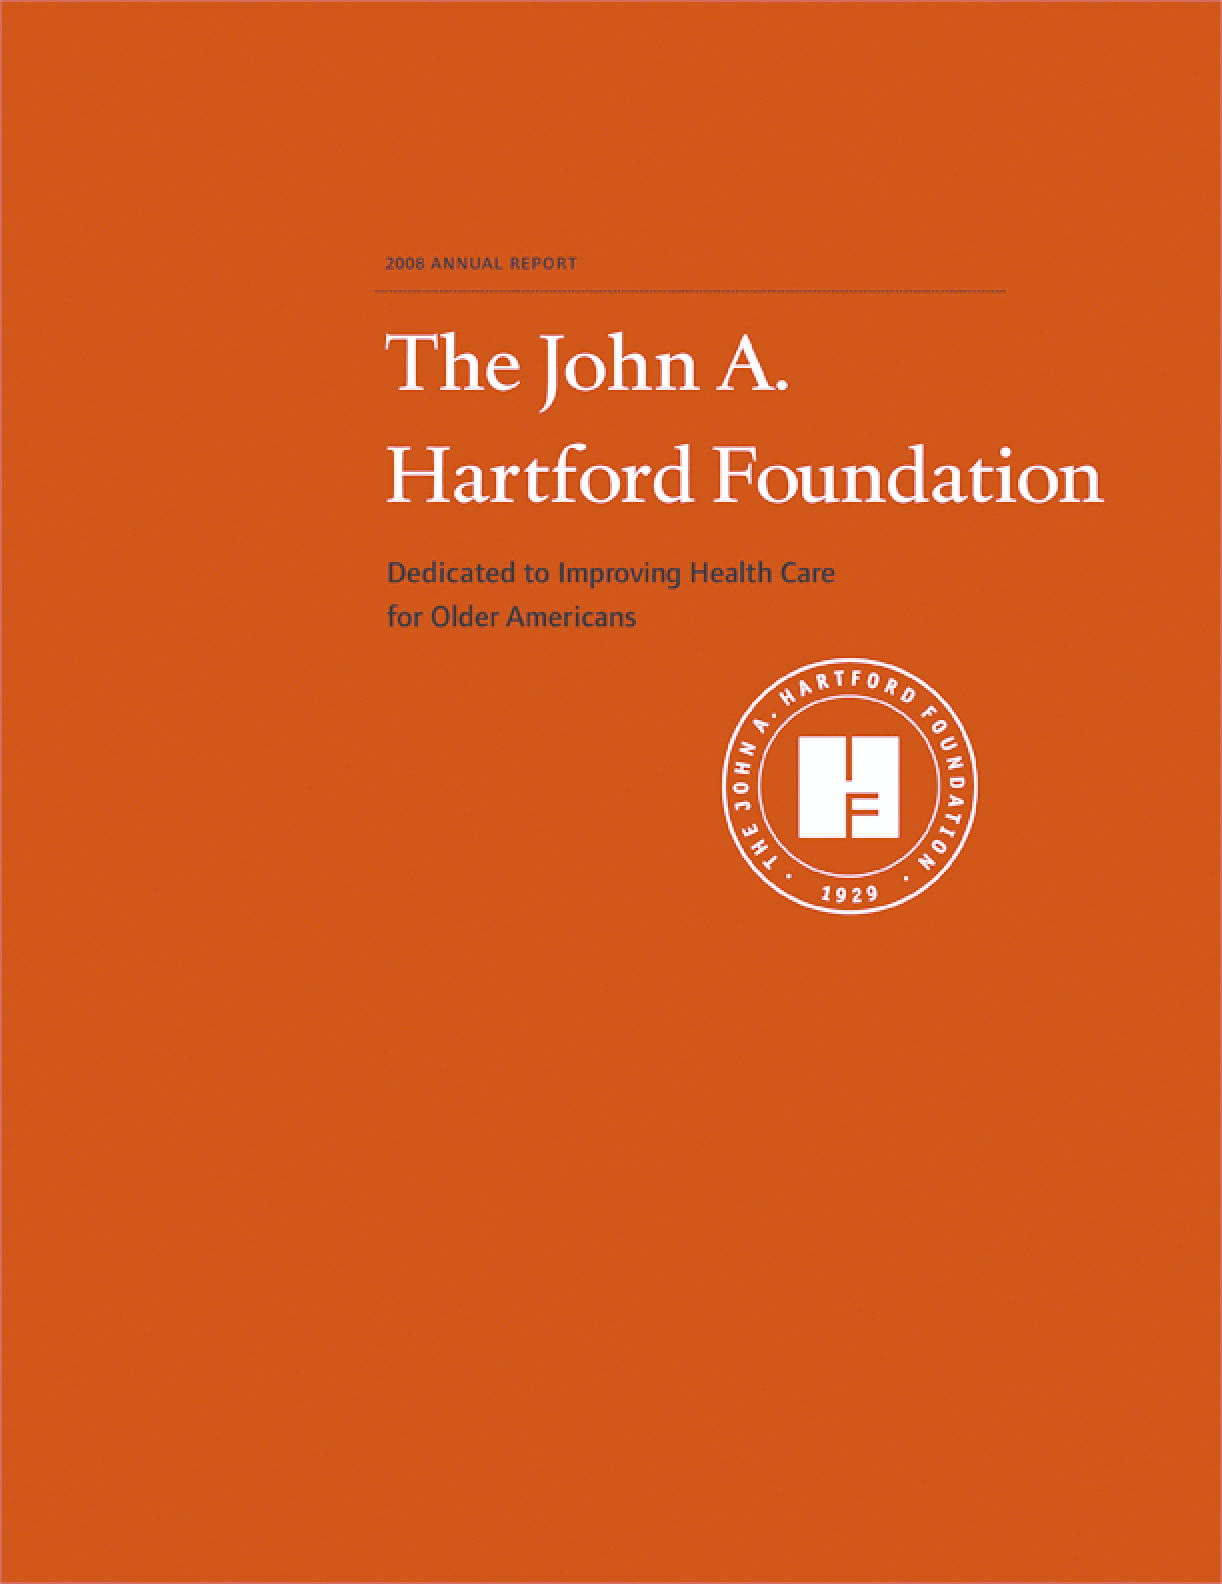 John A. Hartford Foundation - 2008 Annual Report